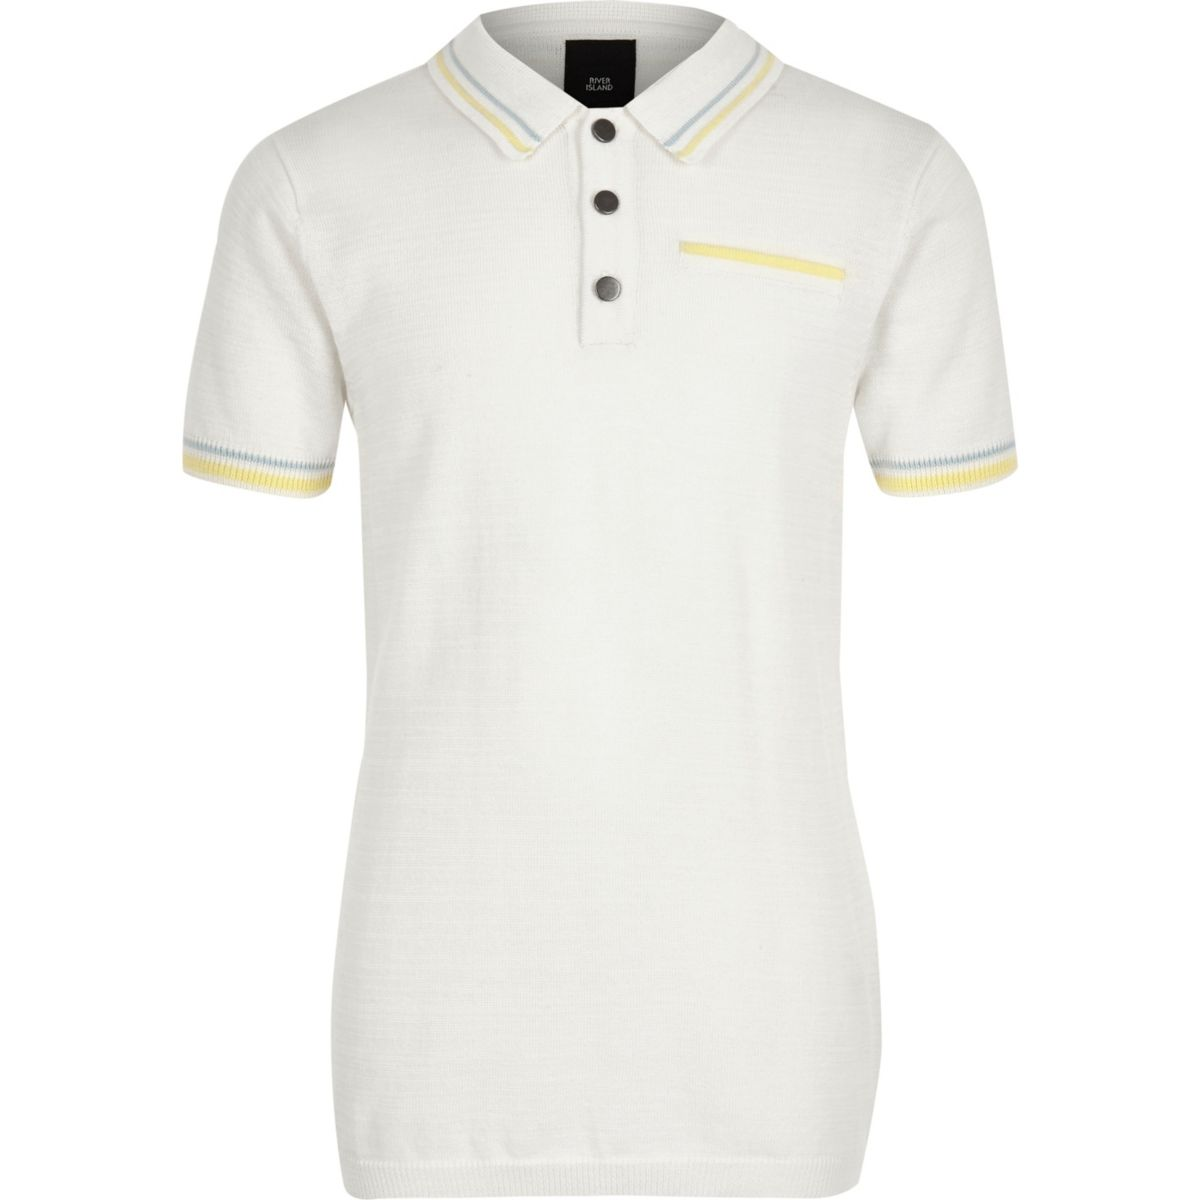 Free shipping and returns on Men's White Polo Shirts at truexfilepv.cf